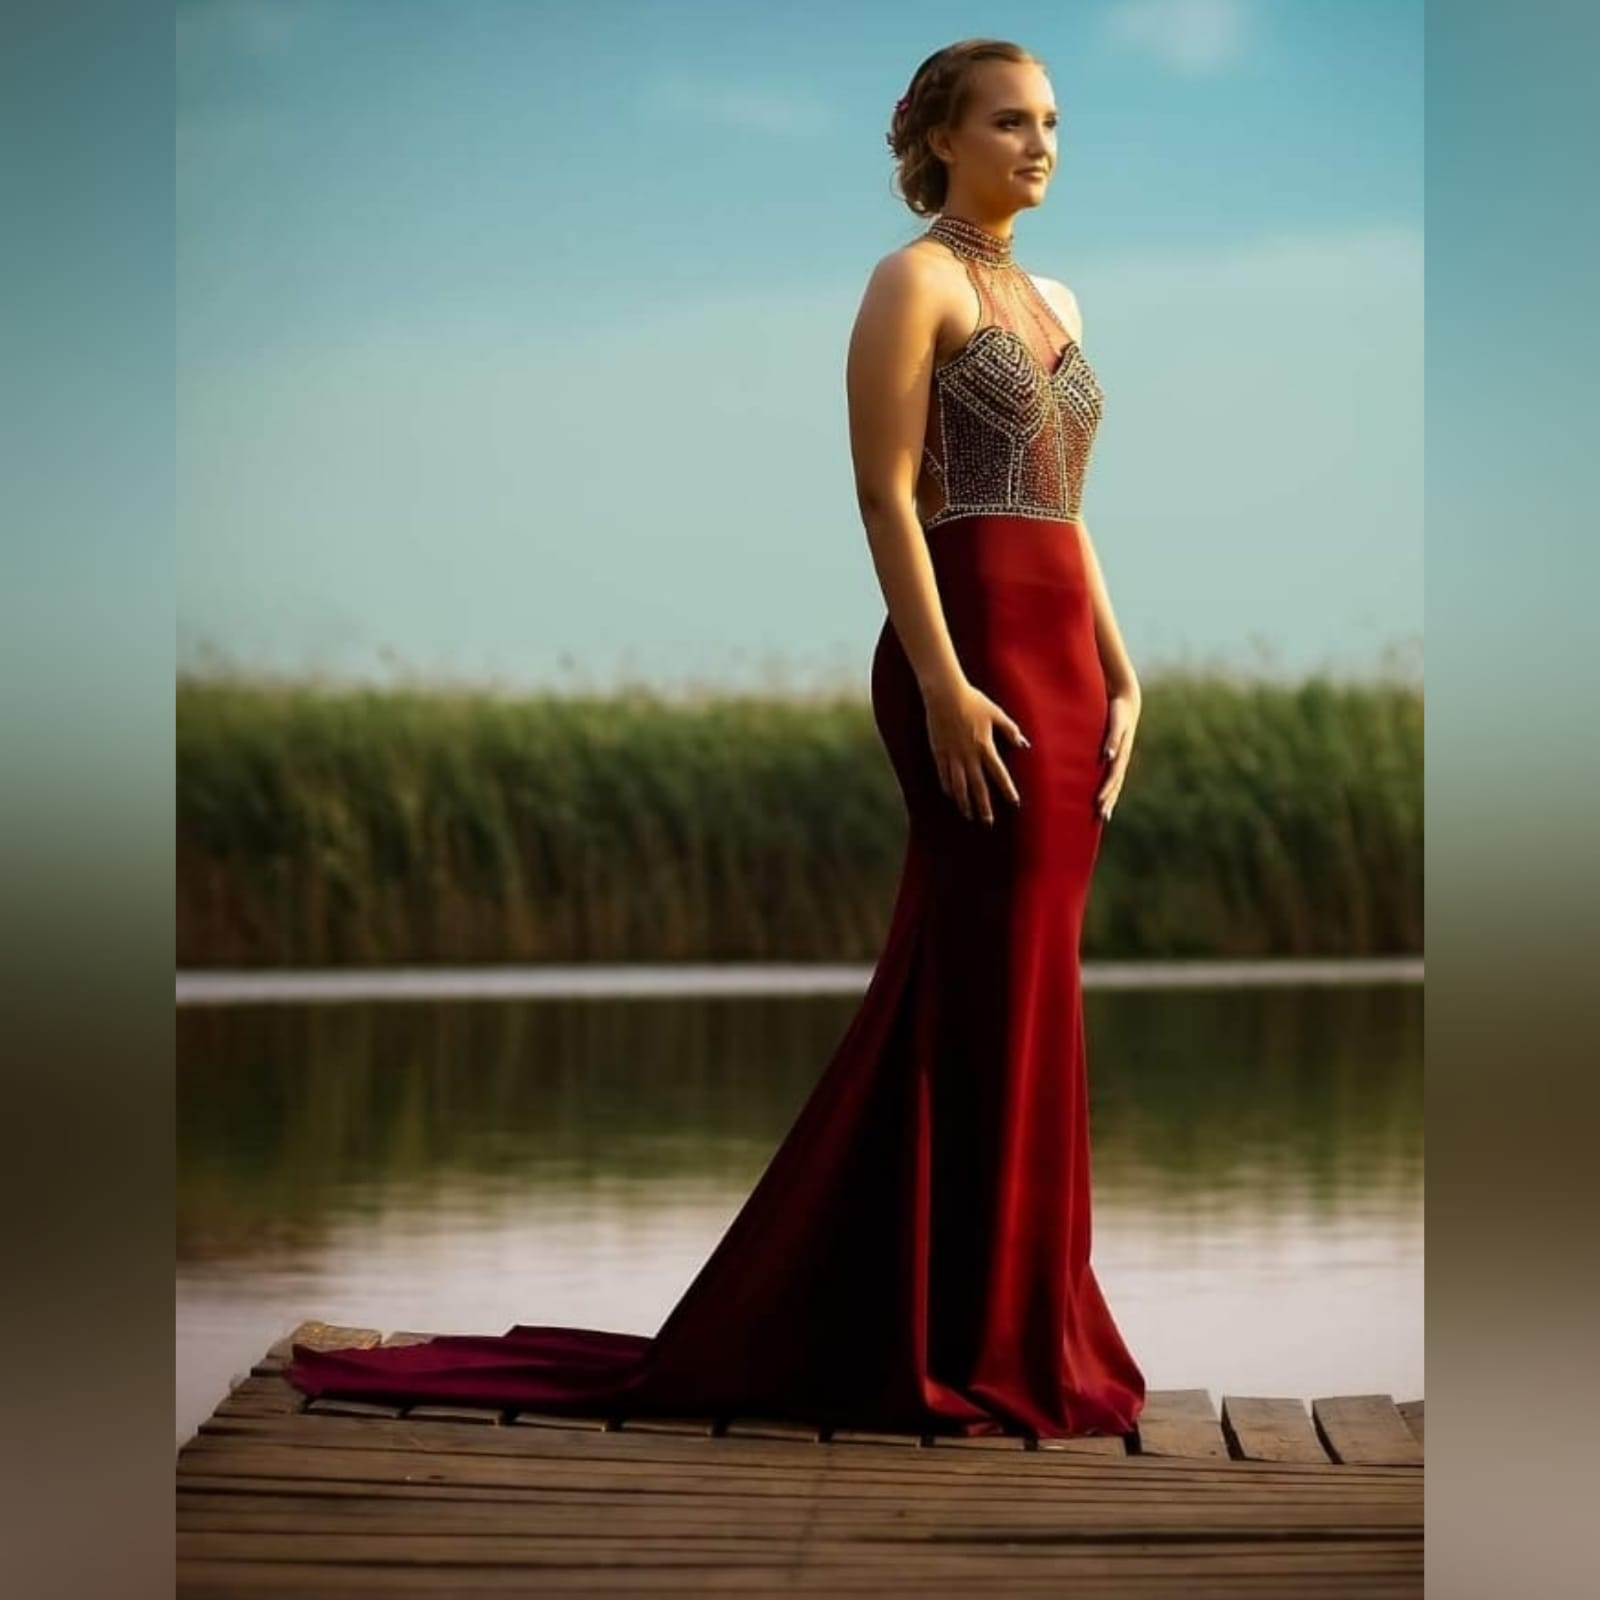 Maroon and gold matric farewell dress with a beaded bodice 2 maroon and gold matric farewell dress with a beaded bodice, low open back with beaded illusion straps. Illusion choker neckline detail with beads and diamante, with a slit and a train.